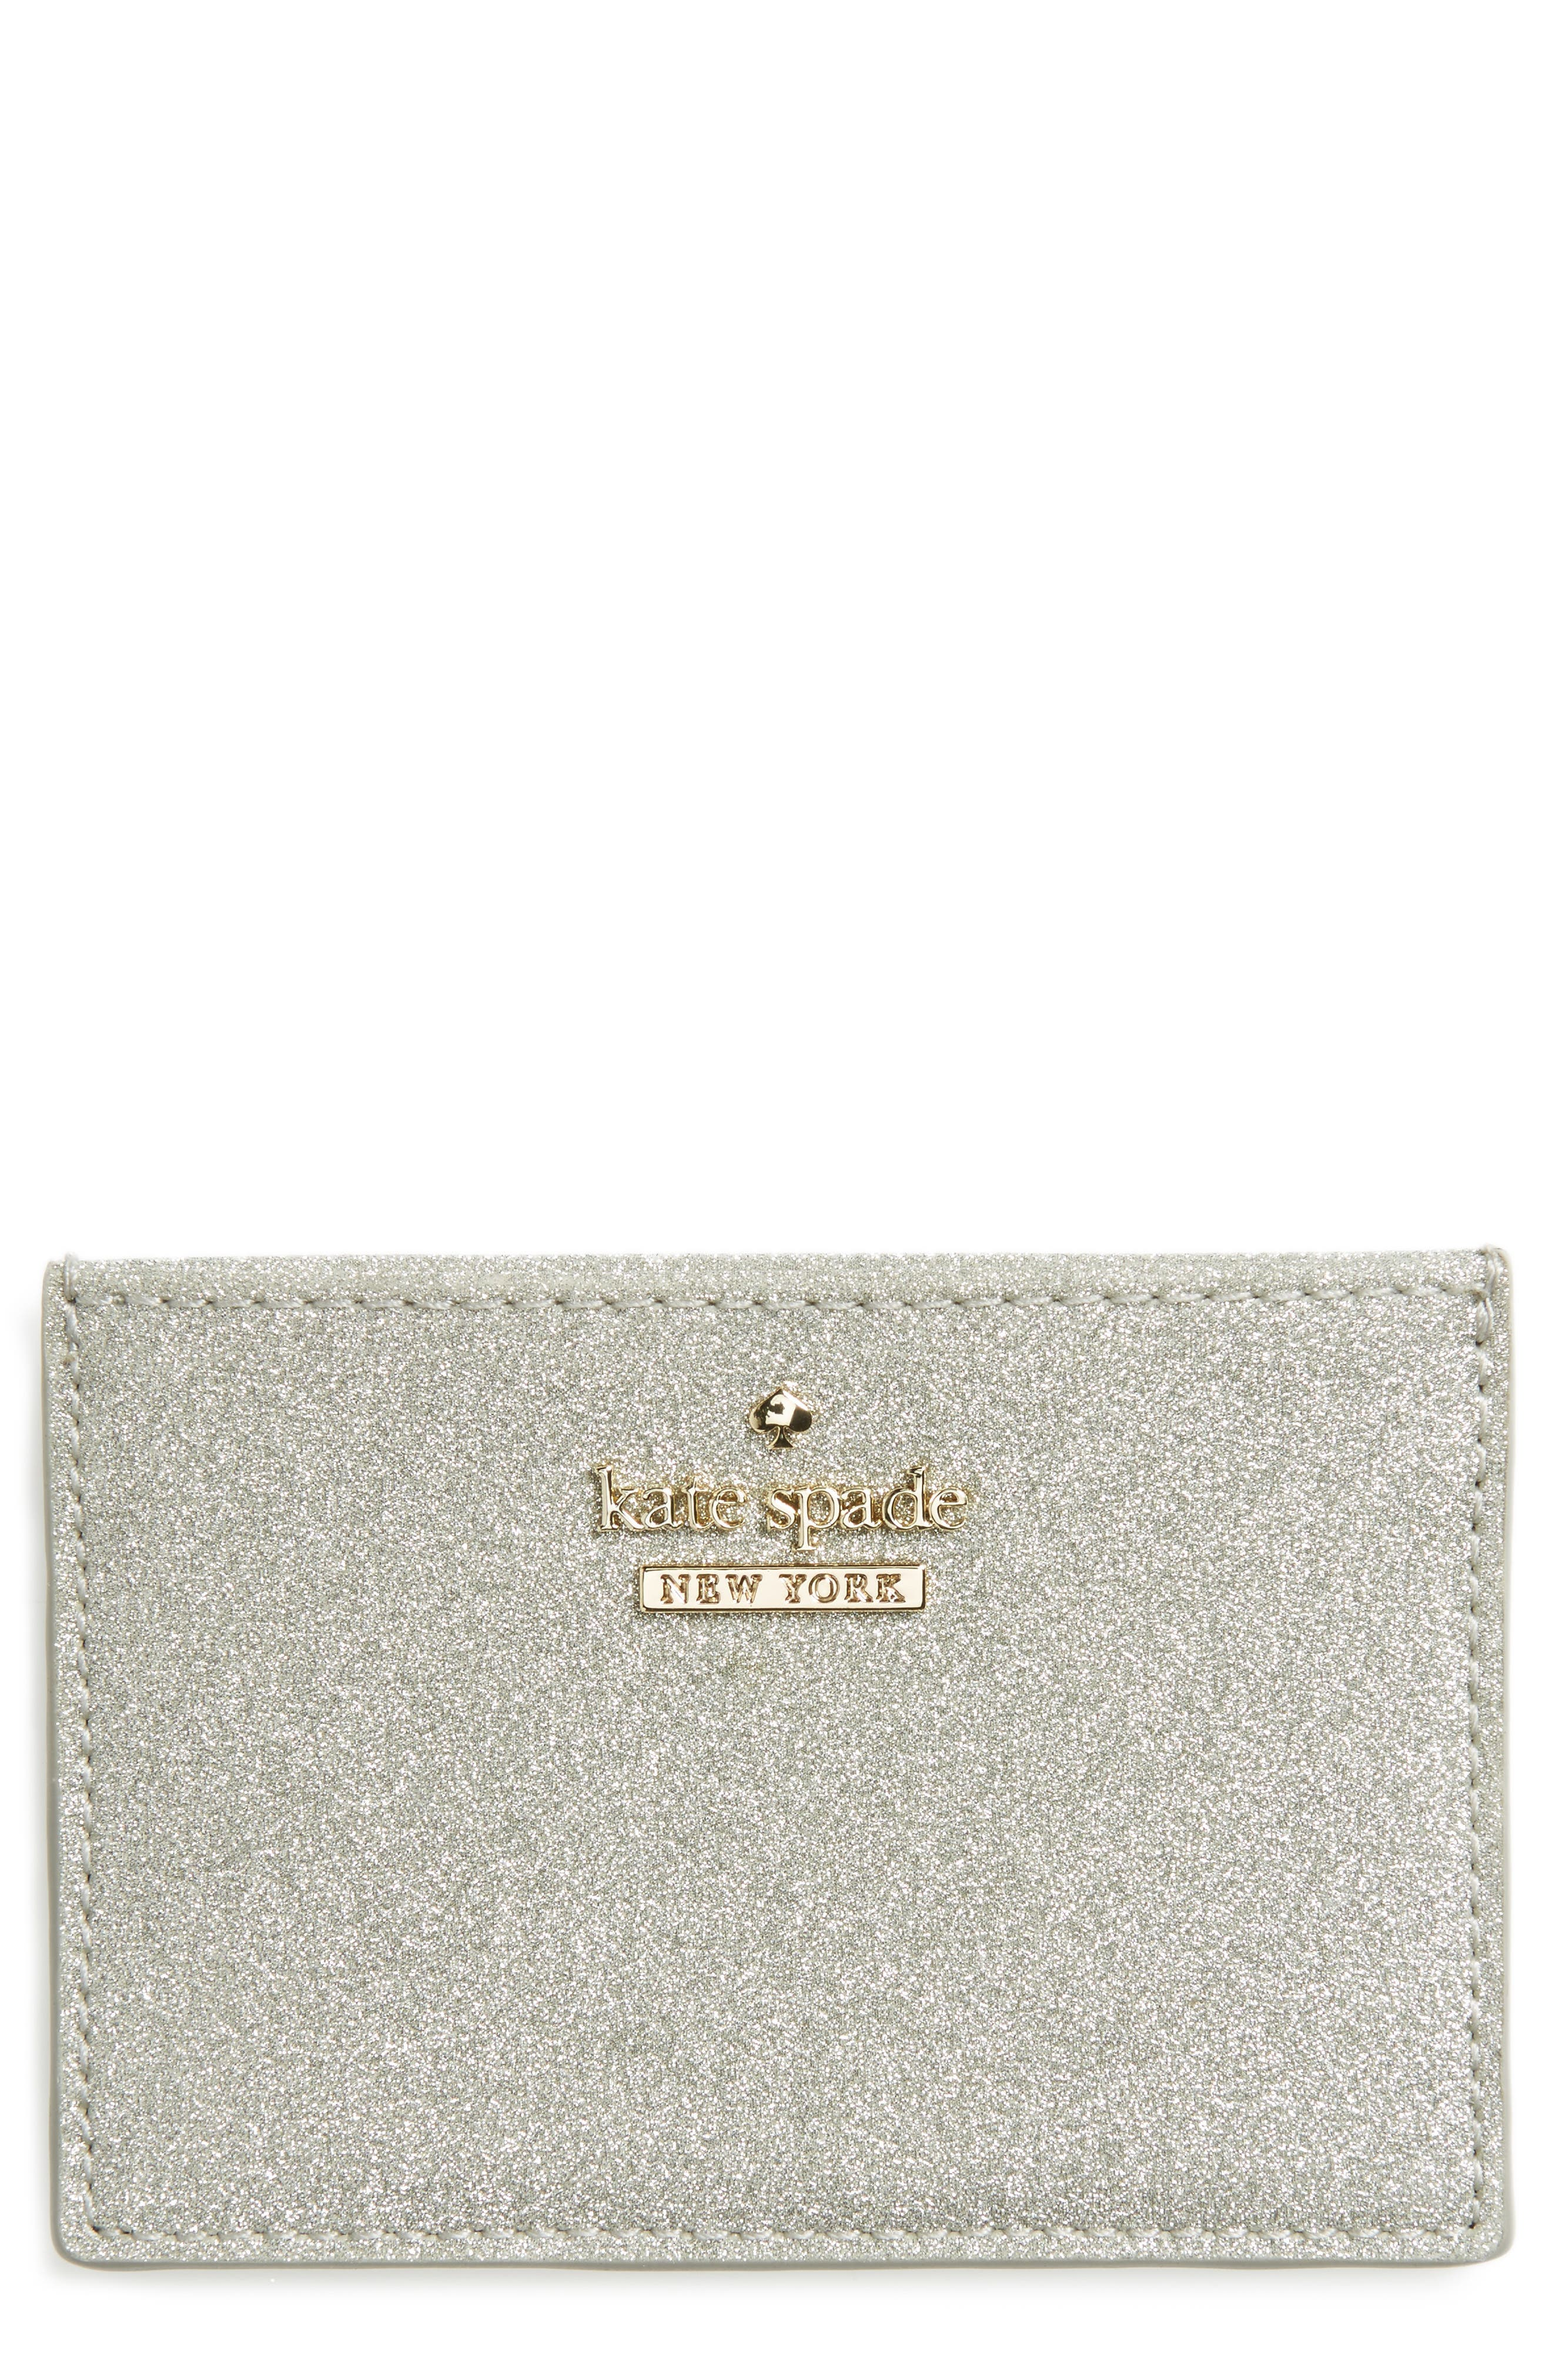 kate spade new york burgess court glitter card holder